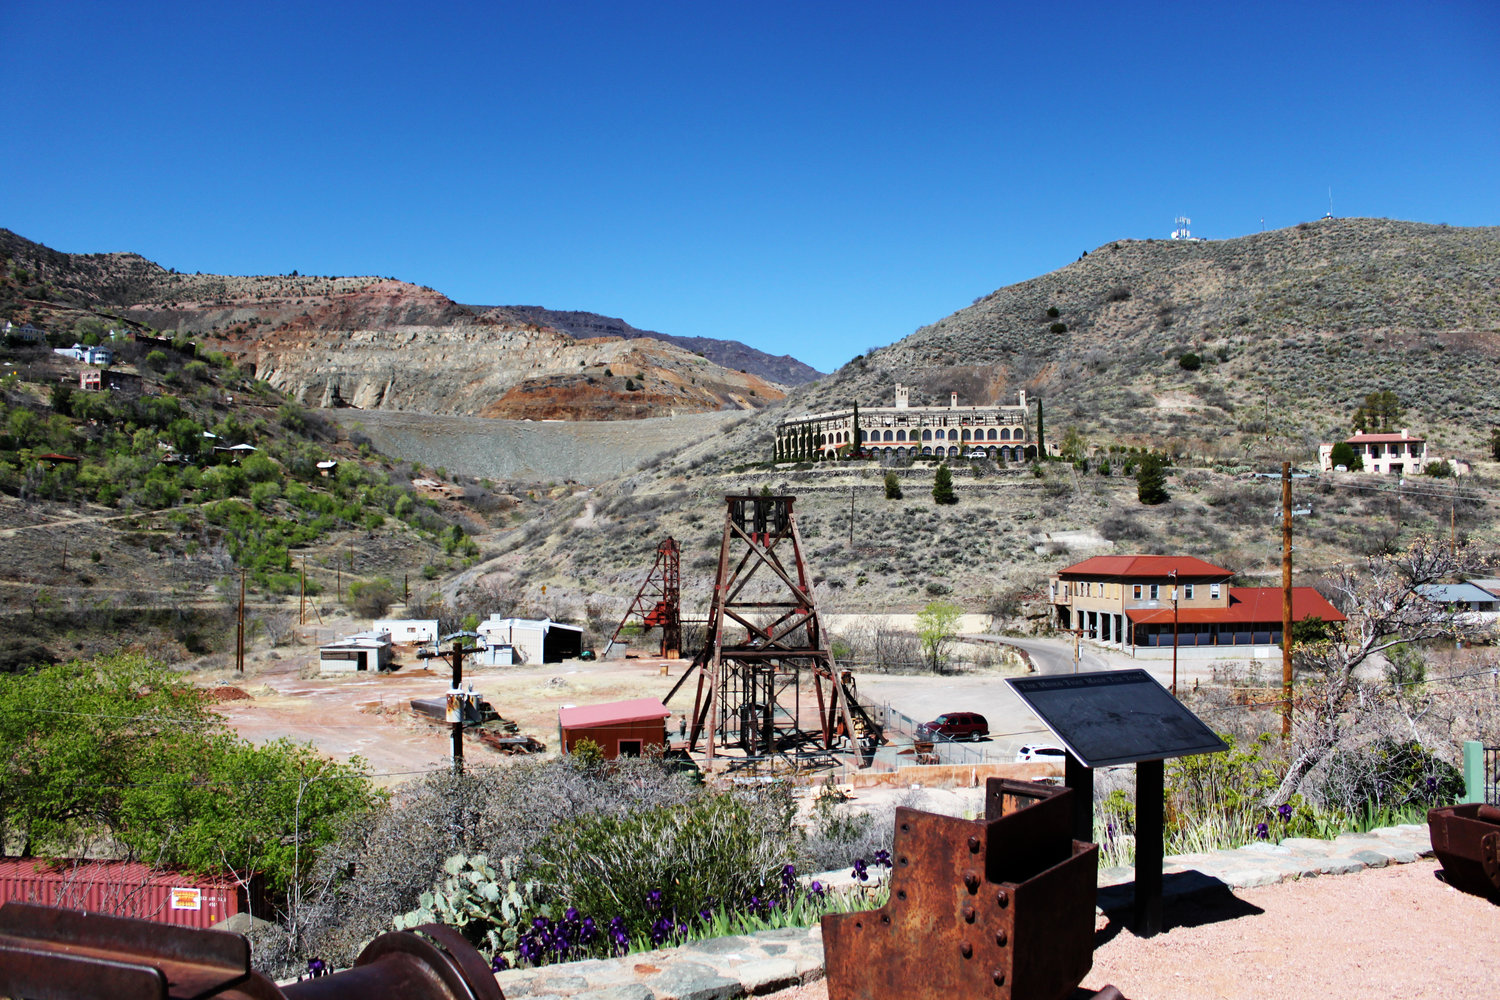 Street Map Of Jerome Arizona.Top 10 Things To Do In Jerome Arizona The Creative Adventurer